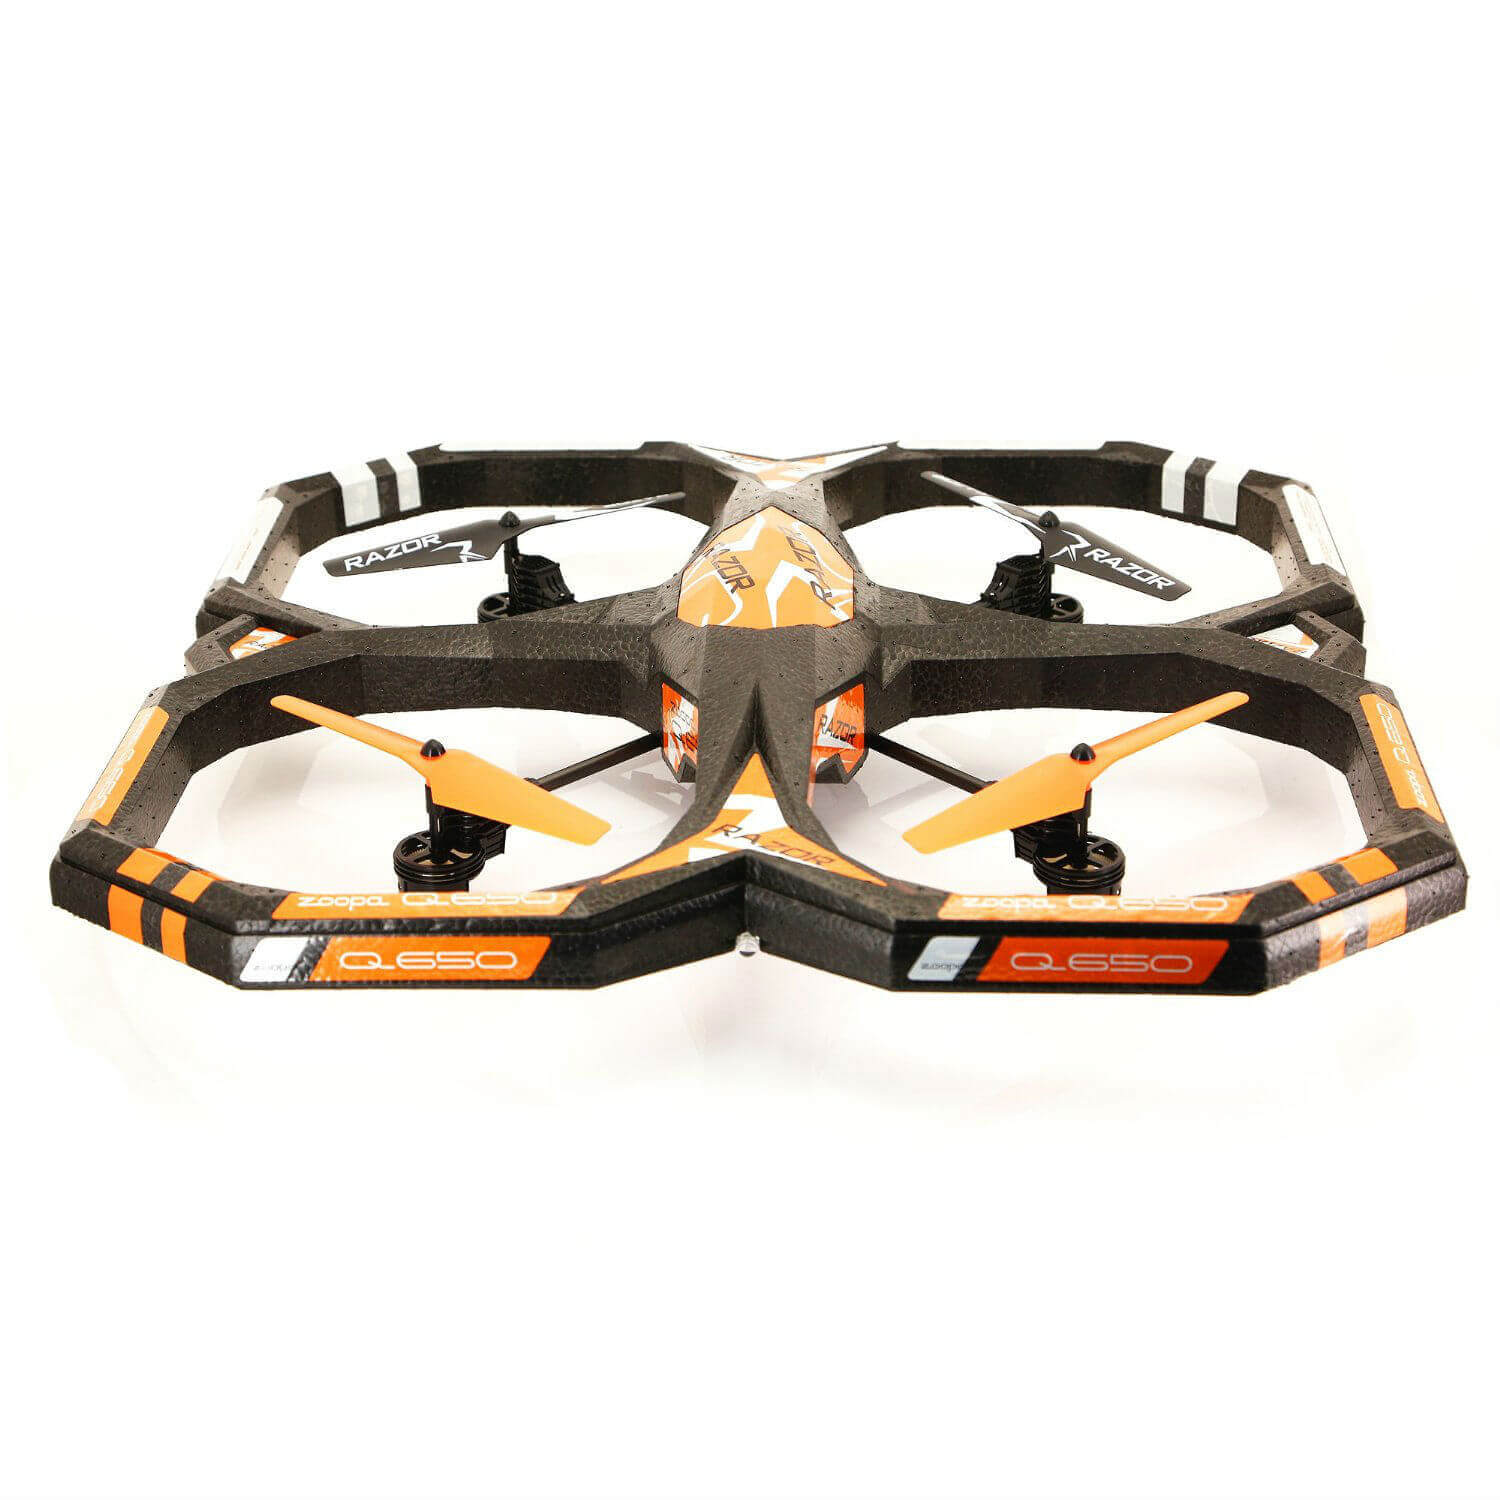 ACME Zoopa Q 650 Quadrocopter